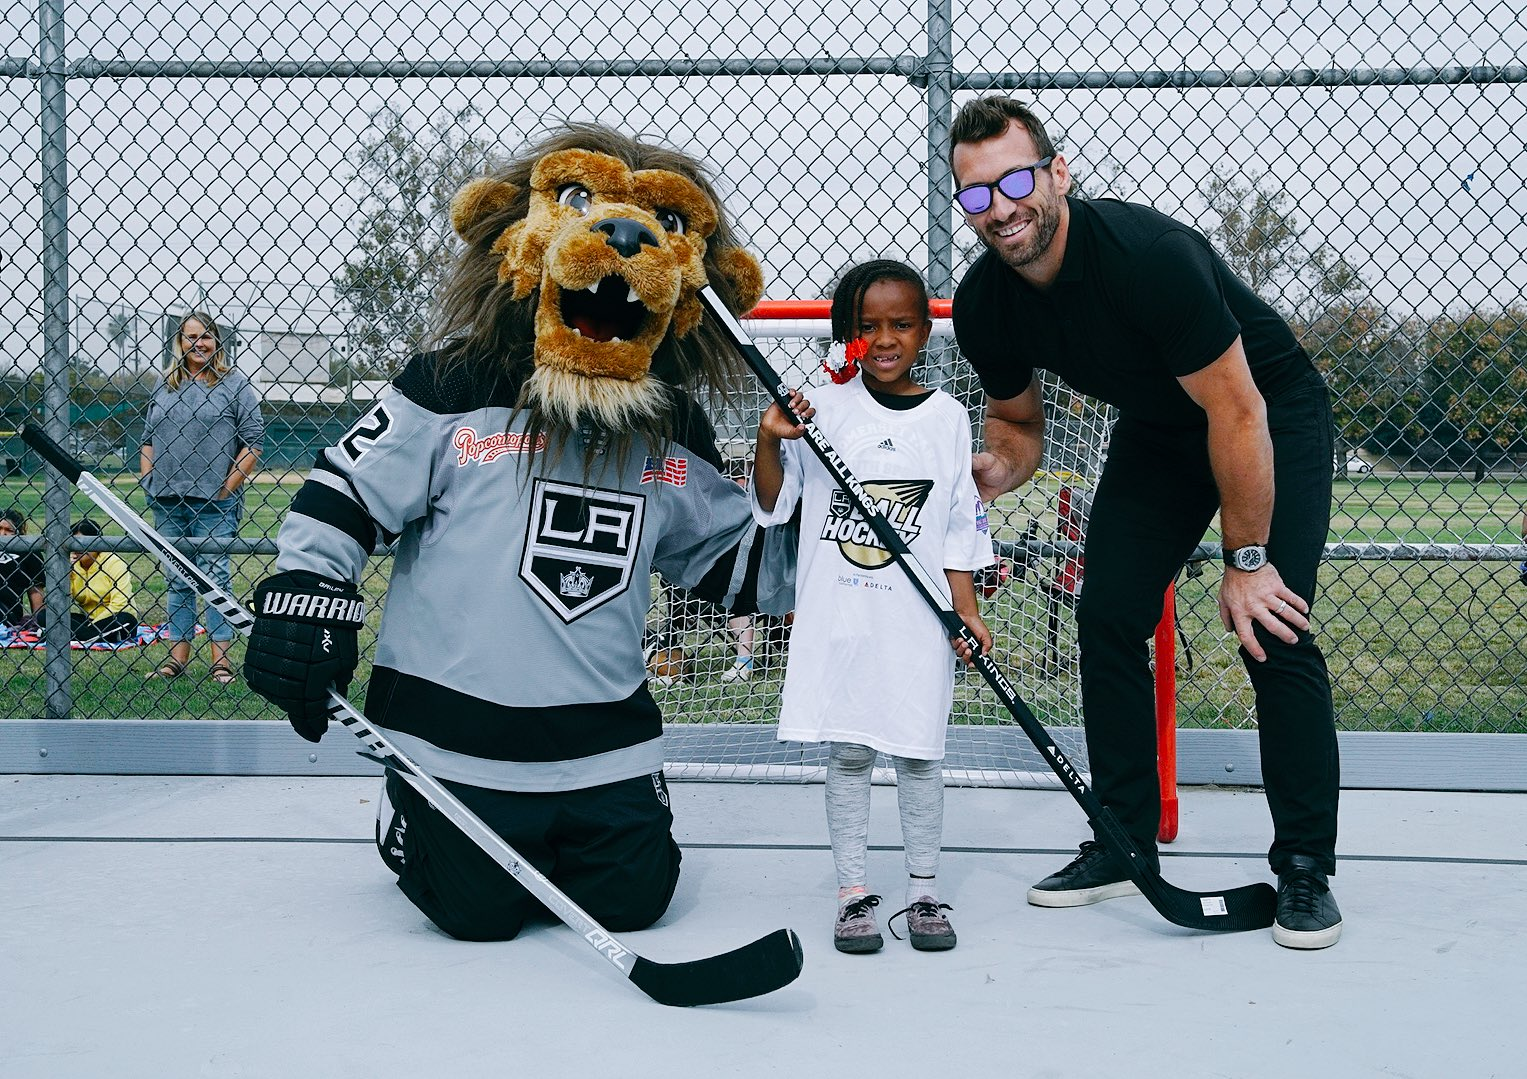 A fun day of LA Kings ball hockey at Heartwell Park with @BaileyLAKings and @jarretstoll ❤️ https://t.co/6IjvQpJgMN